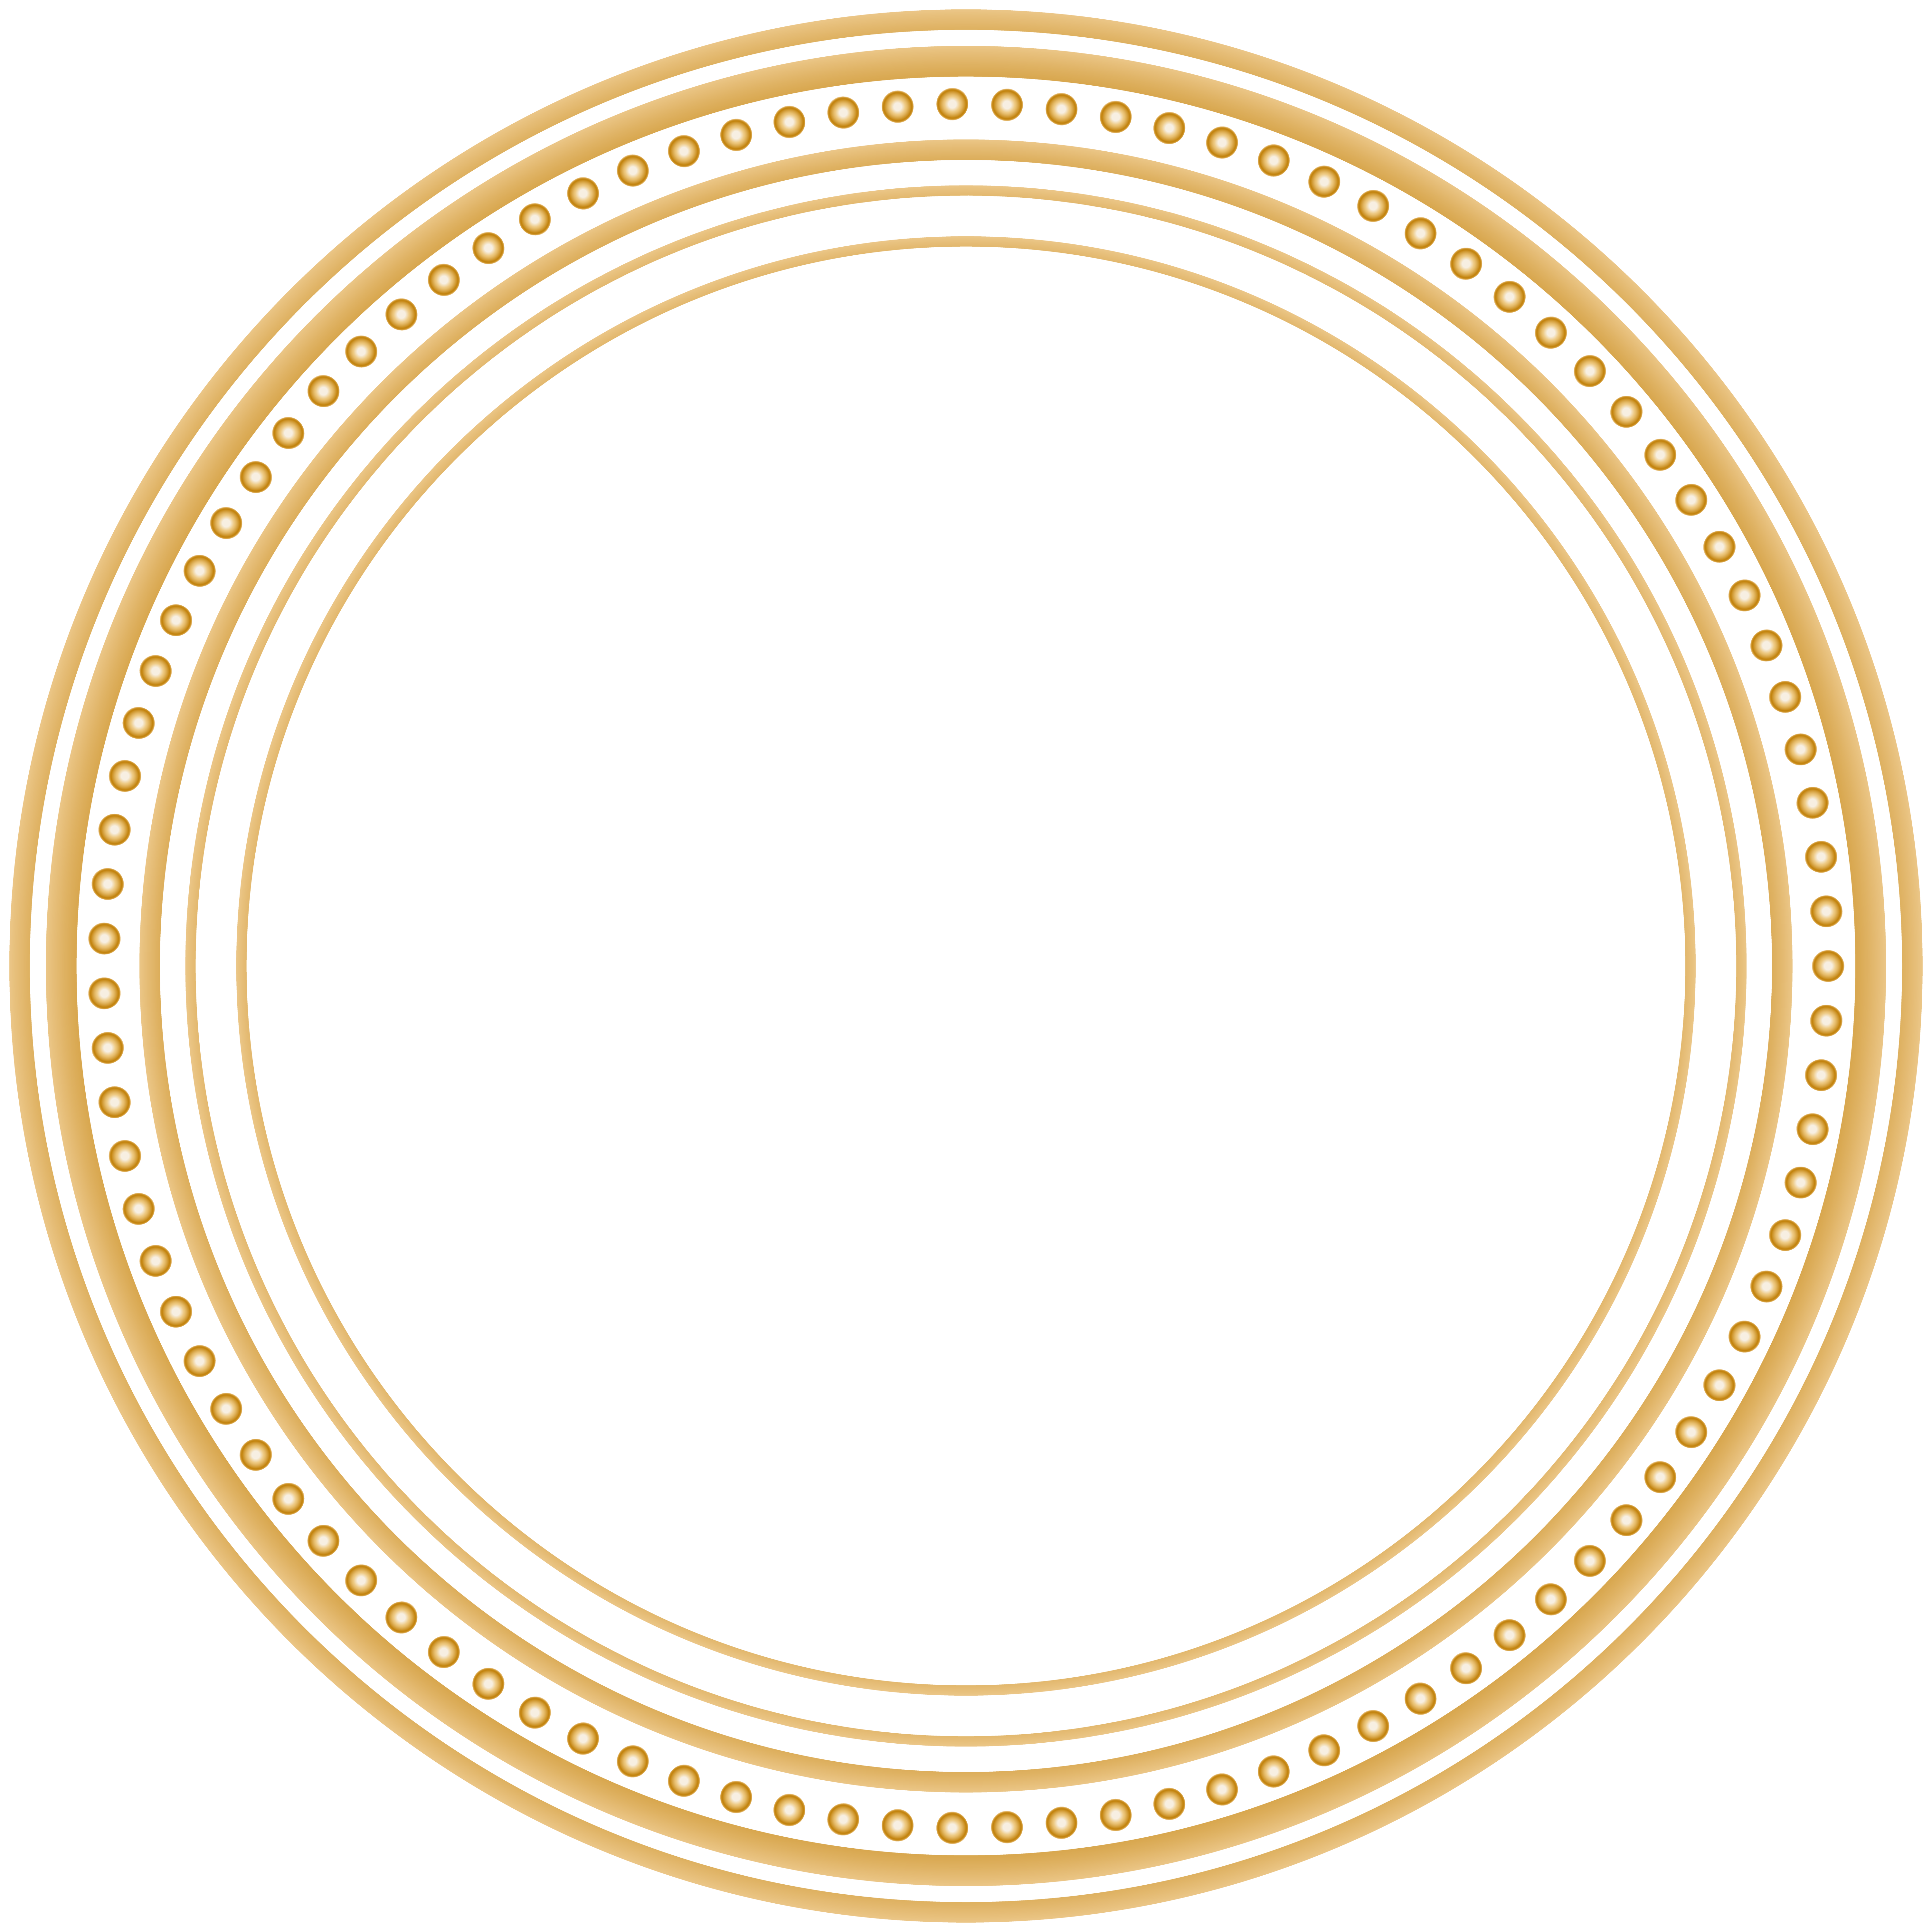 Round Frame Png & Free Round Frame.png Transparent Images #28162.